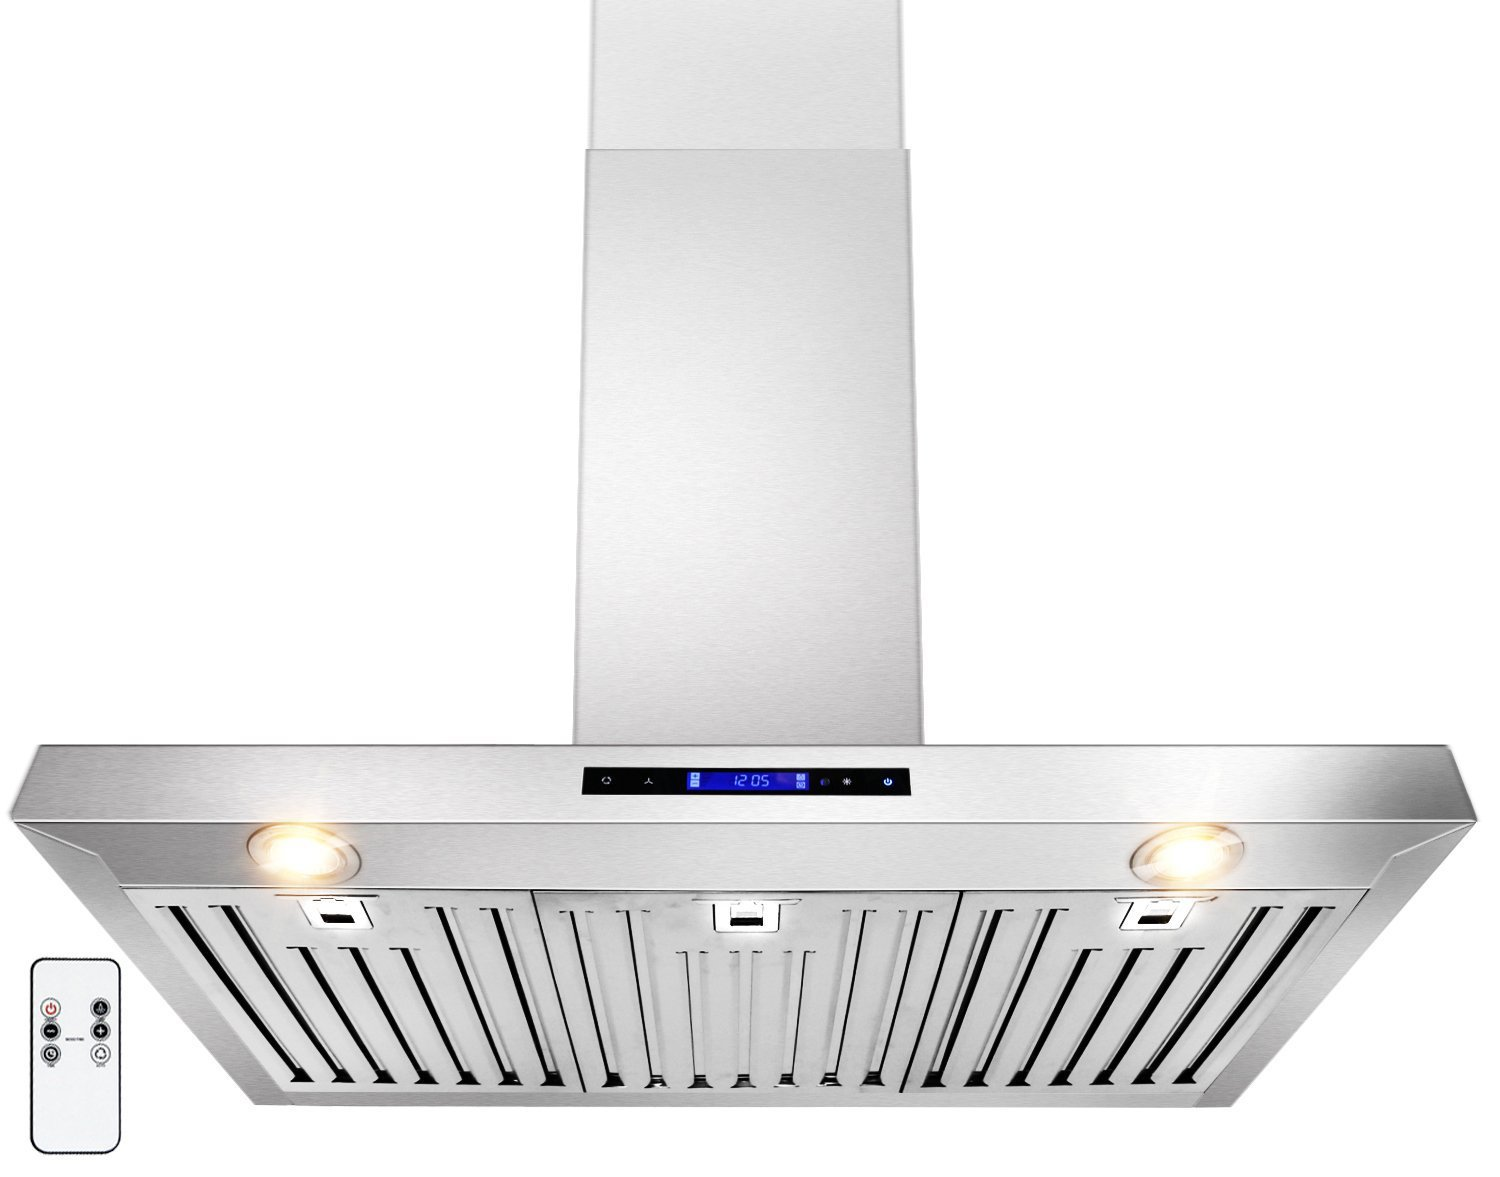 "Golden Vantage 30"" Wall Mount Stainless Steel Range Hood With Remote 760CFM Kitchen Vent"